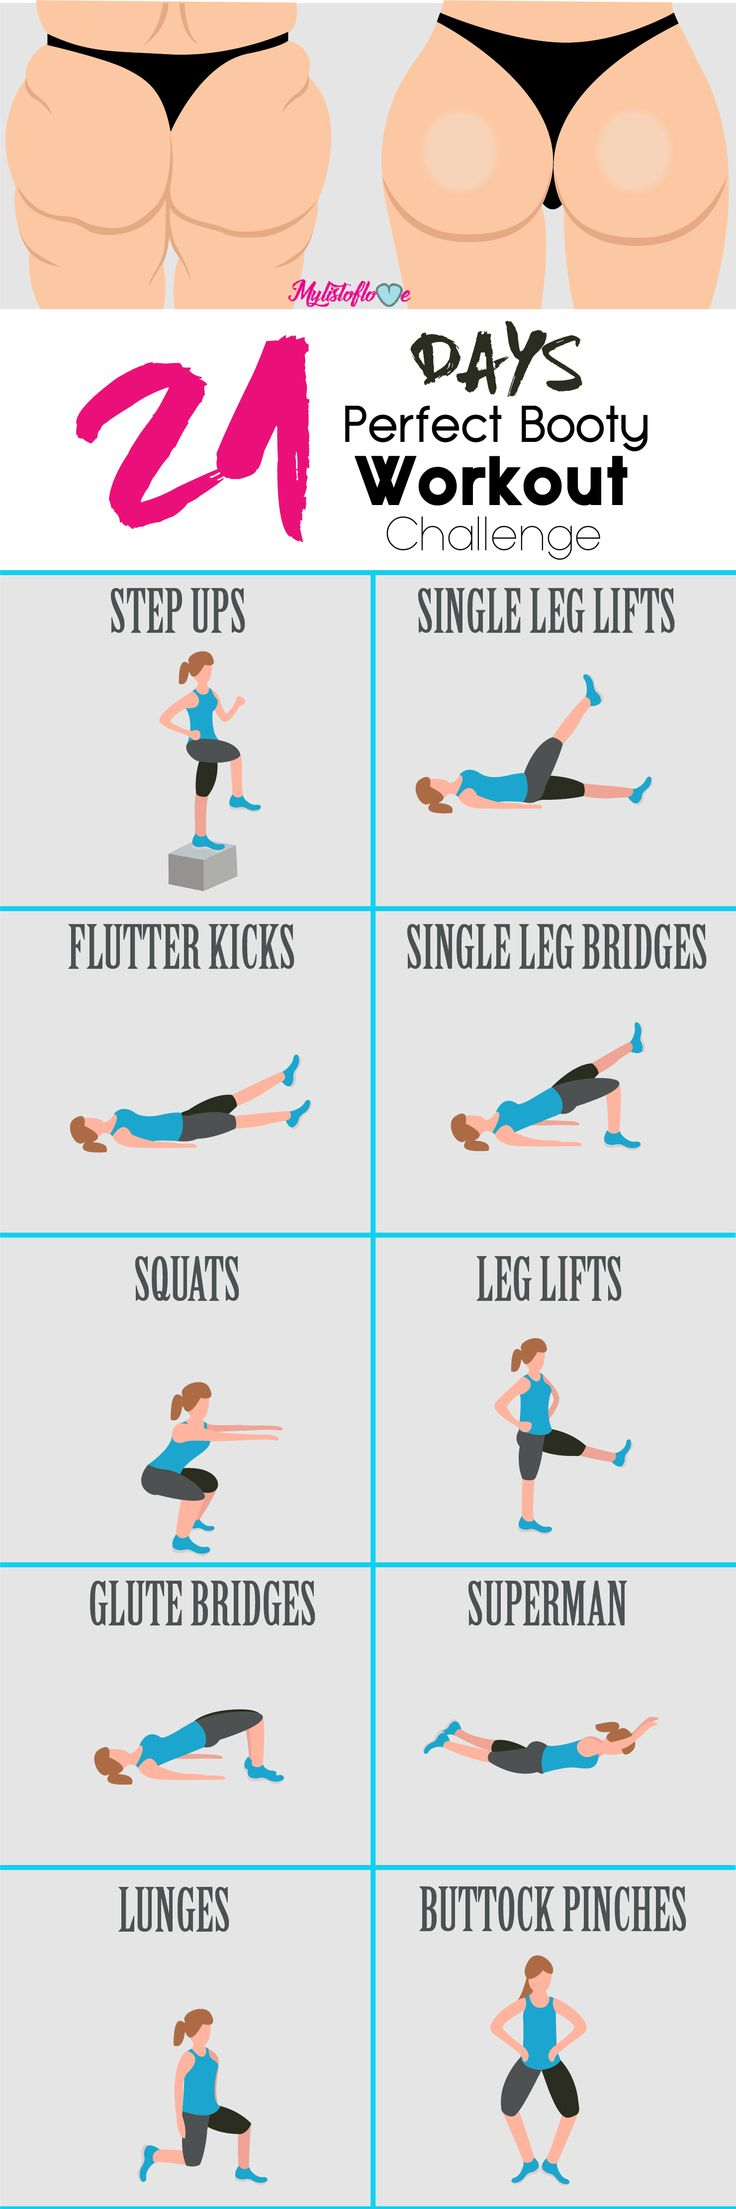 21 Days Perfect Booty Workout Challenge....